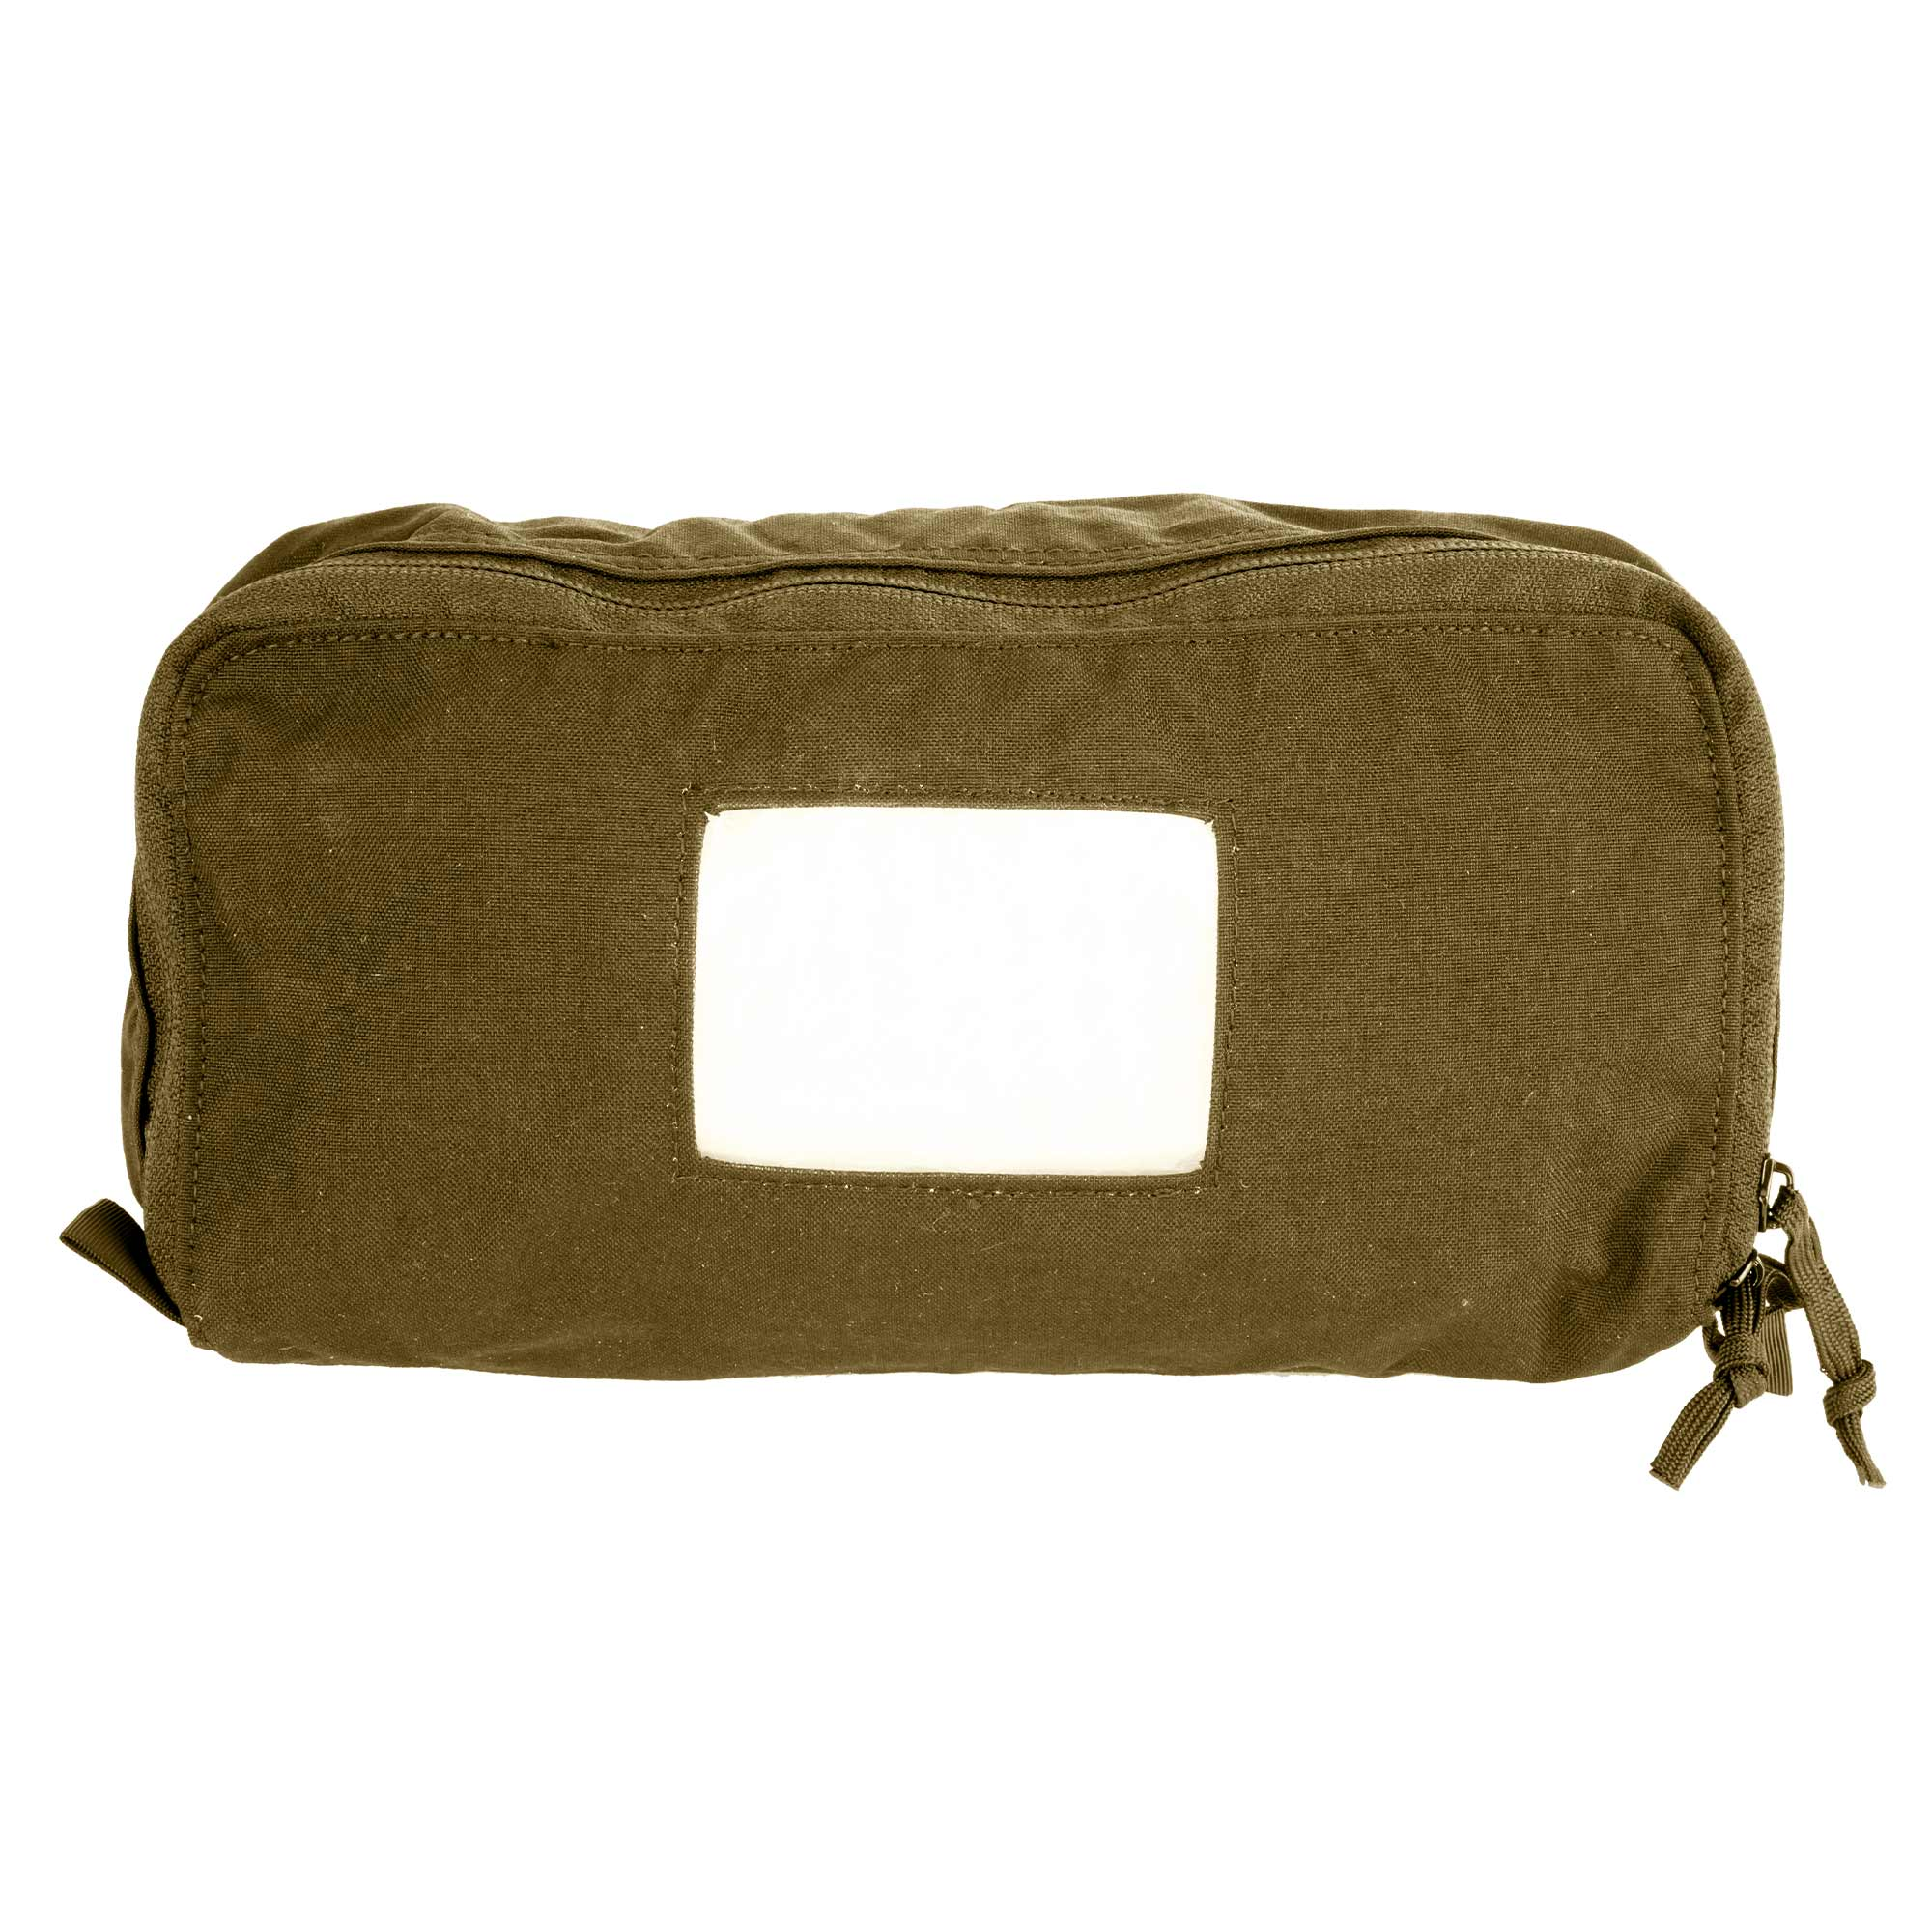 LBX Kletttasche Large Open Window Pouch coyote tan